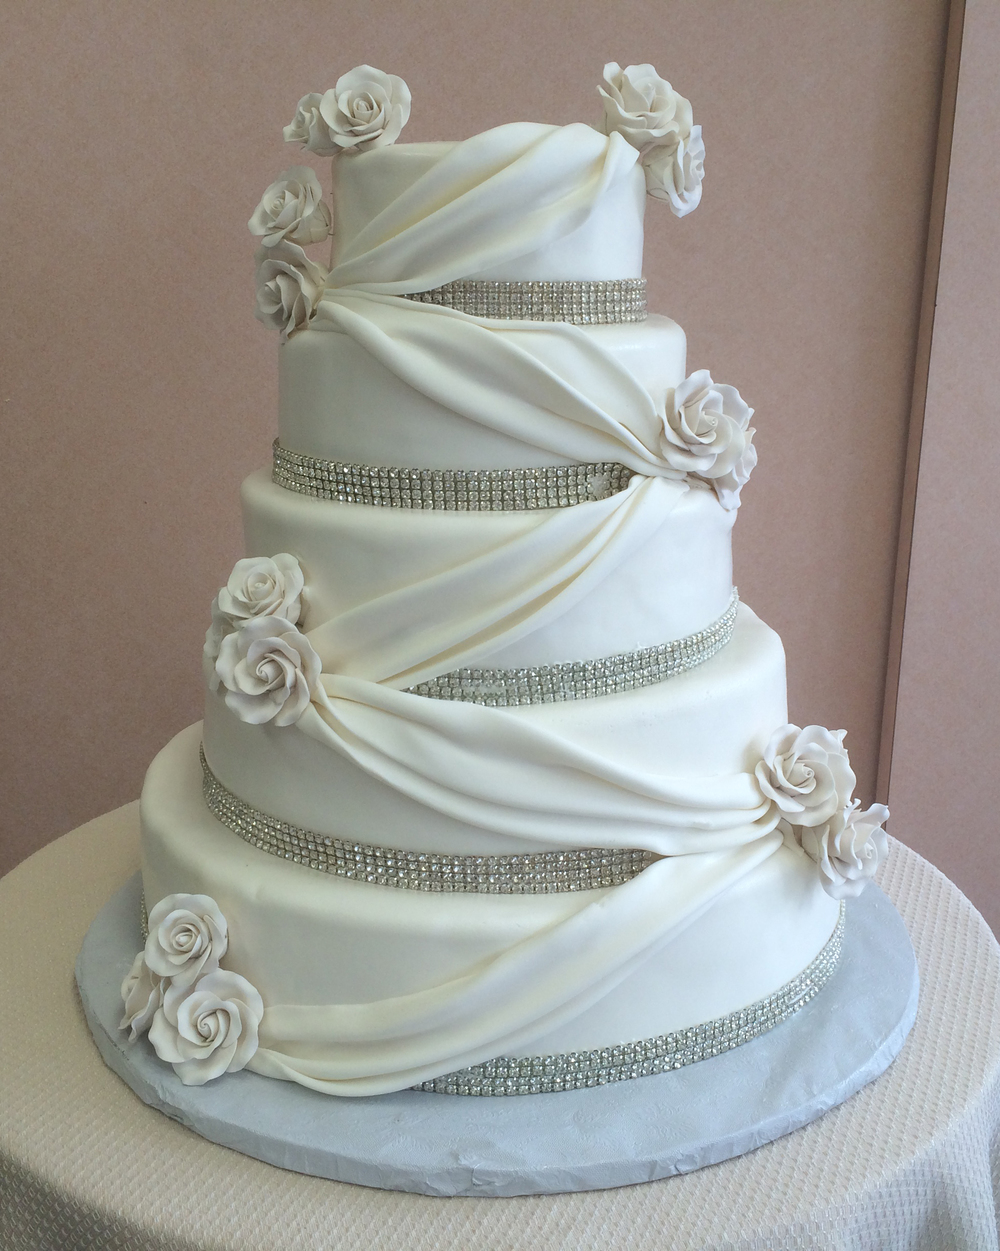 46 with Swarovski Crystals & White Rolled Fondant Roses